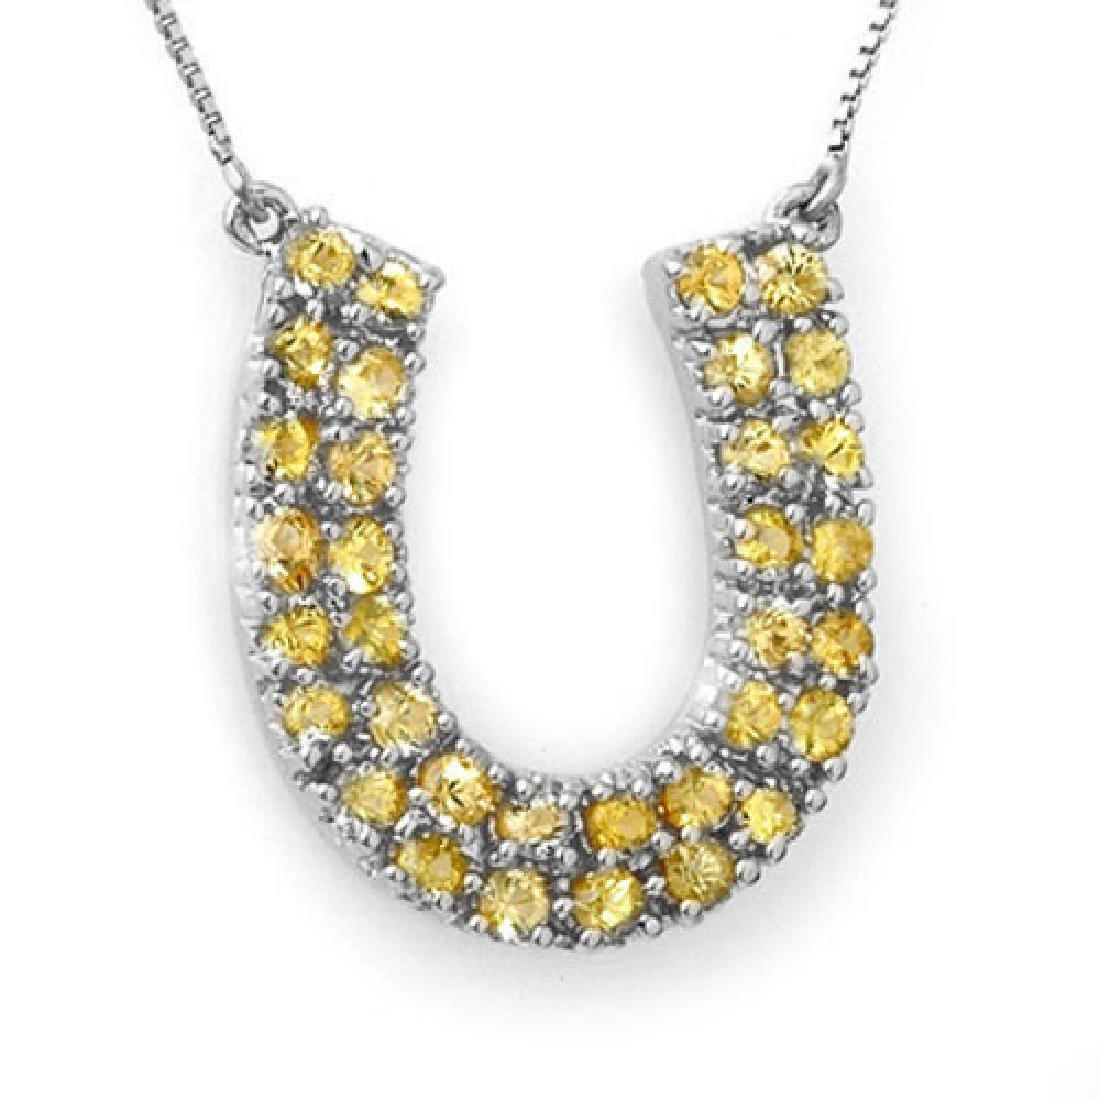 2.0 CTW Yellow Sapphire Necklace 14K White Gold